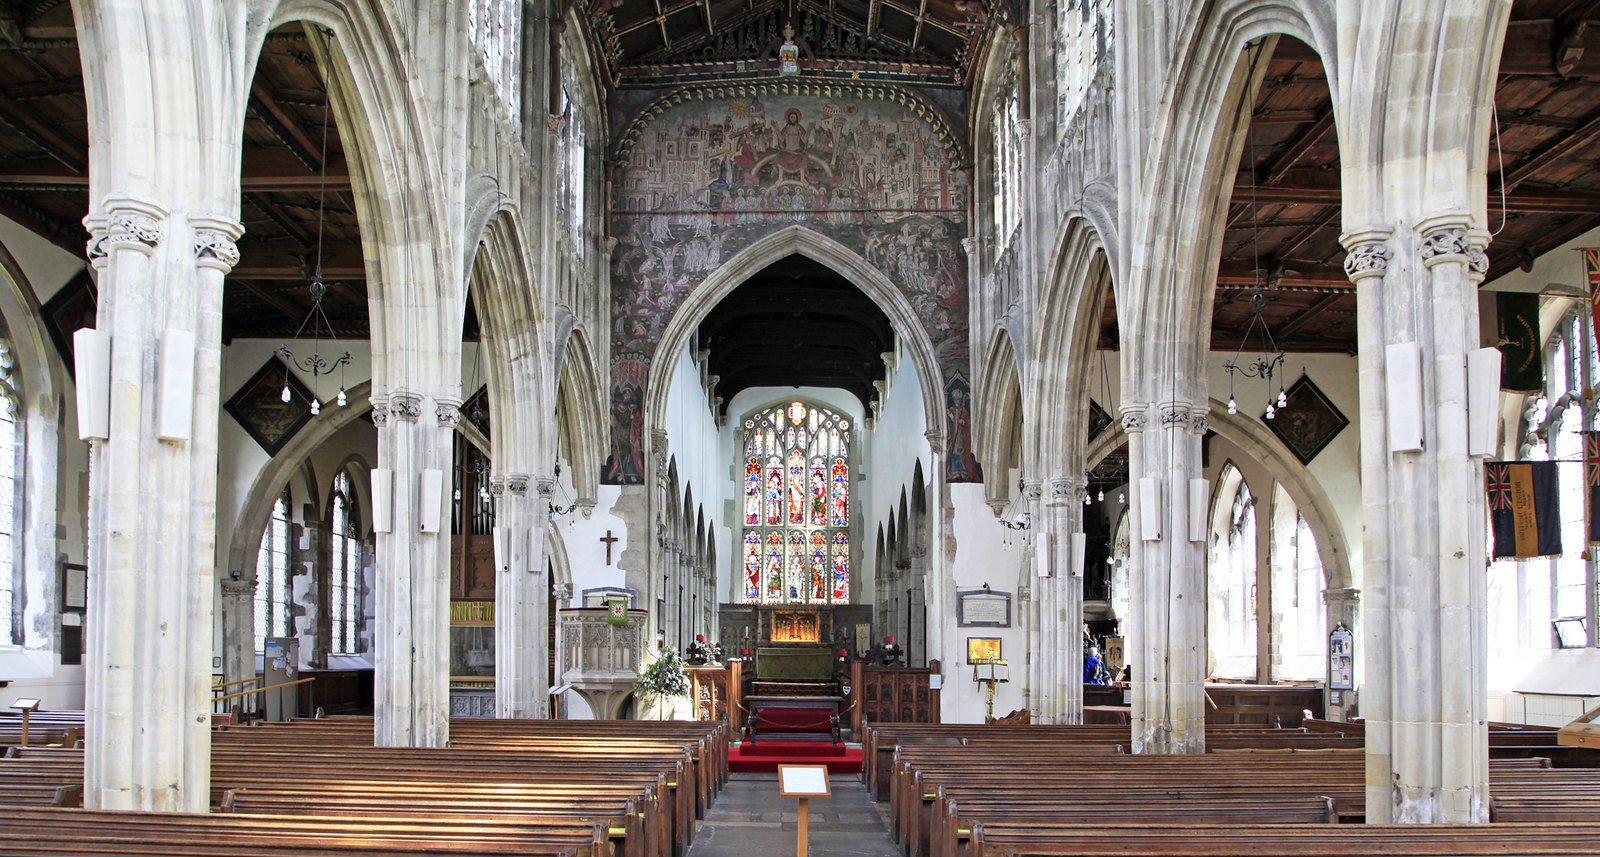 Five historic churches to check out in the Salisbury area - Visit Wiltshire